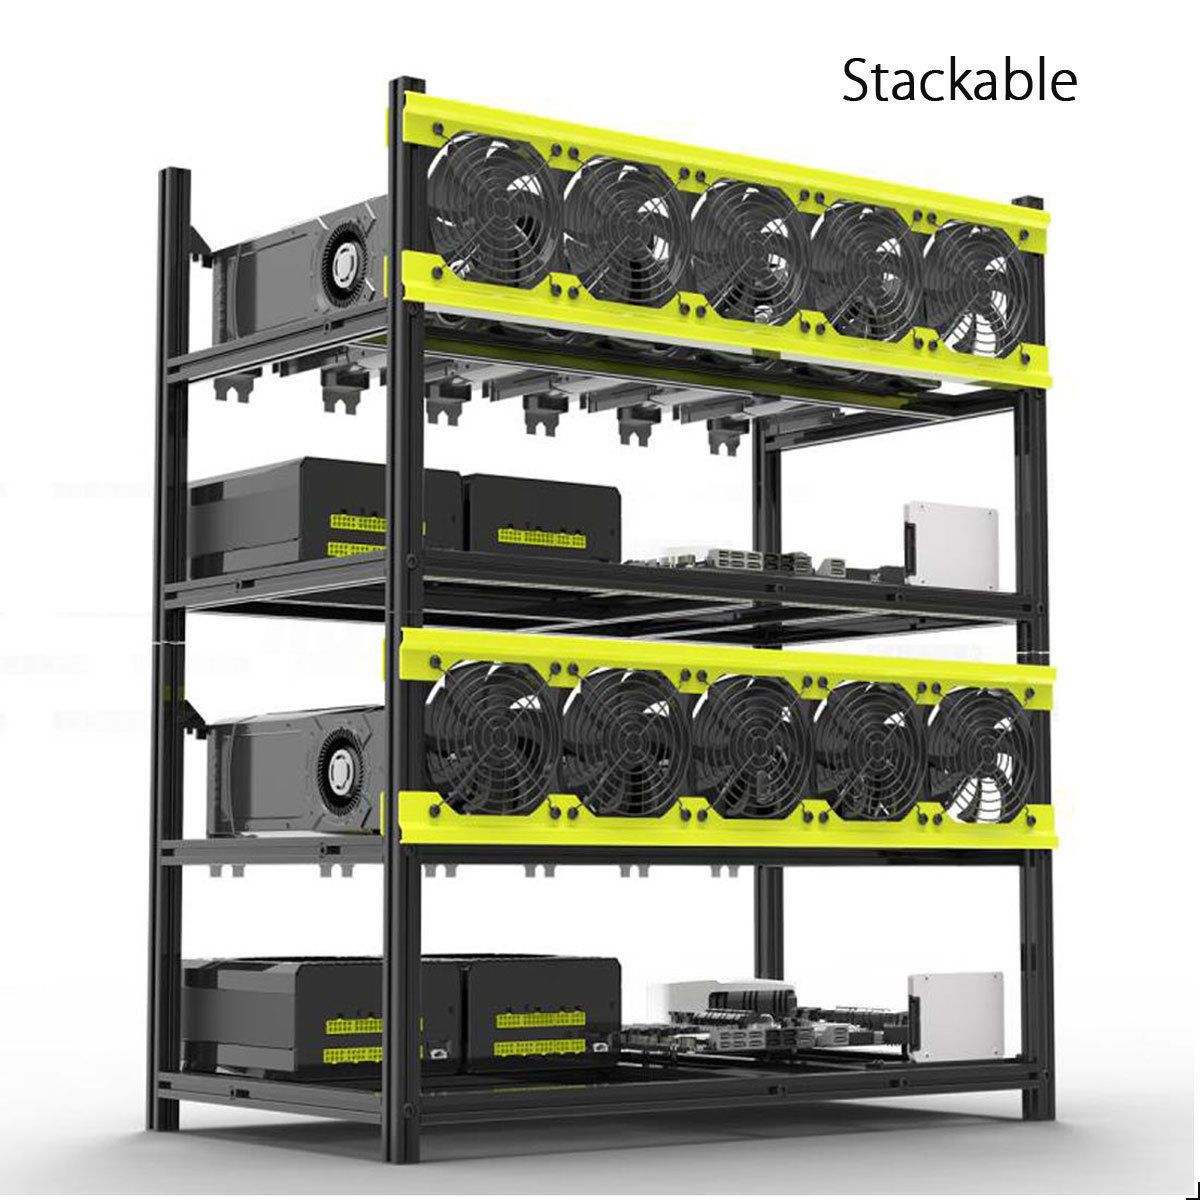 Veddha 8/6 GPU Mining Rig Aluminum Case Stackable Open Air Frame ETH ...